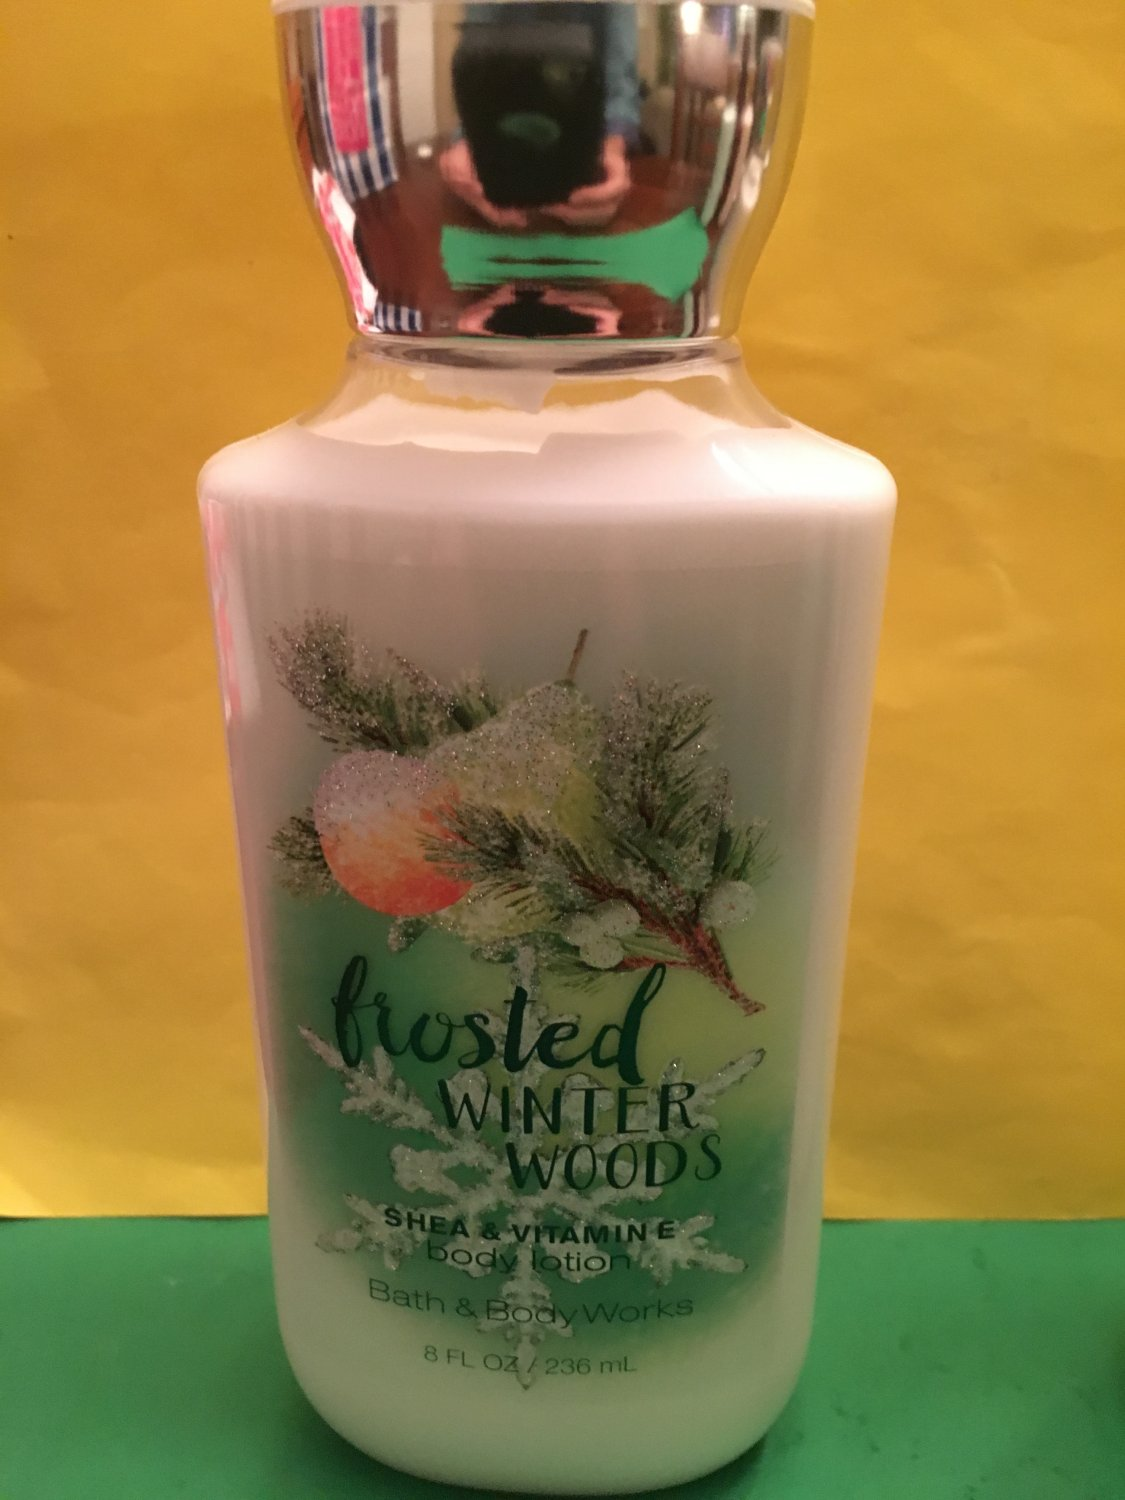 Bath Amp Body Works Frosted Winter Woods Body Lotion Full Size